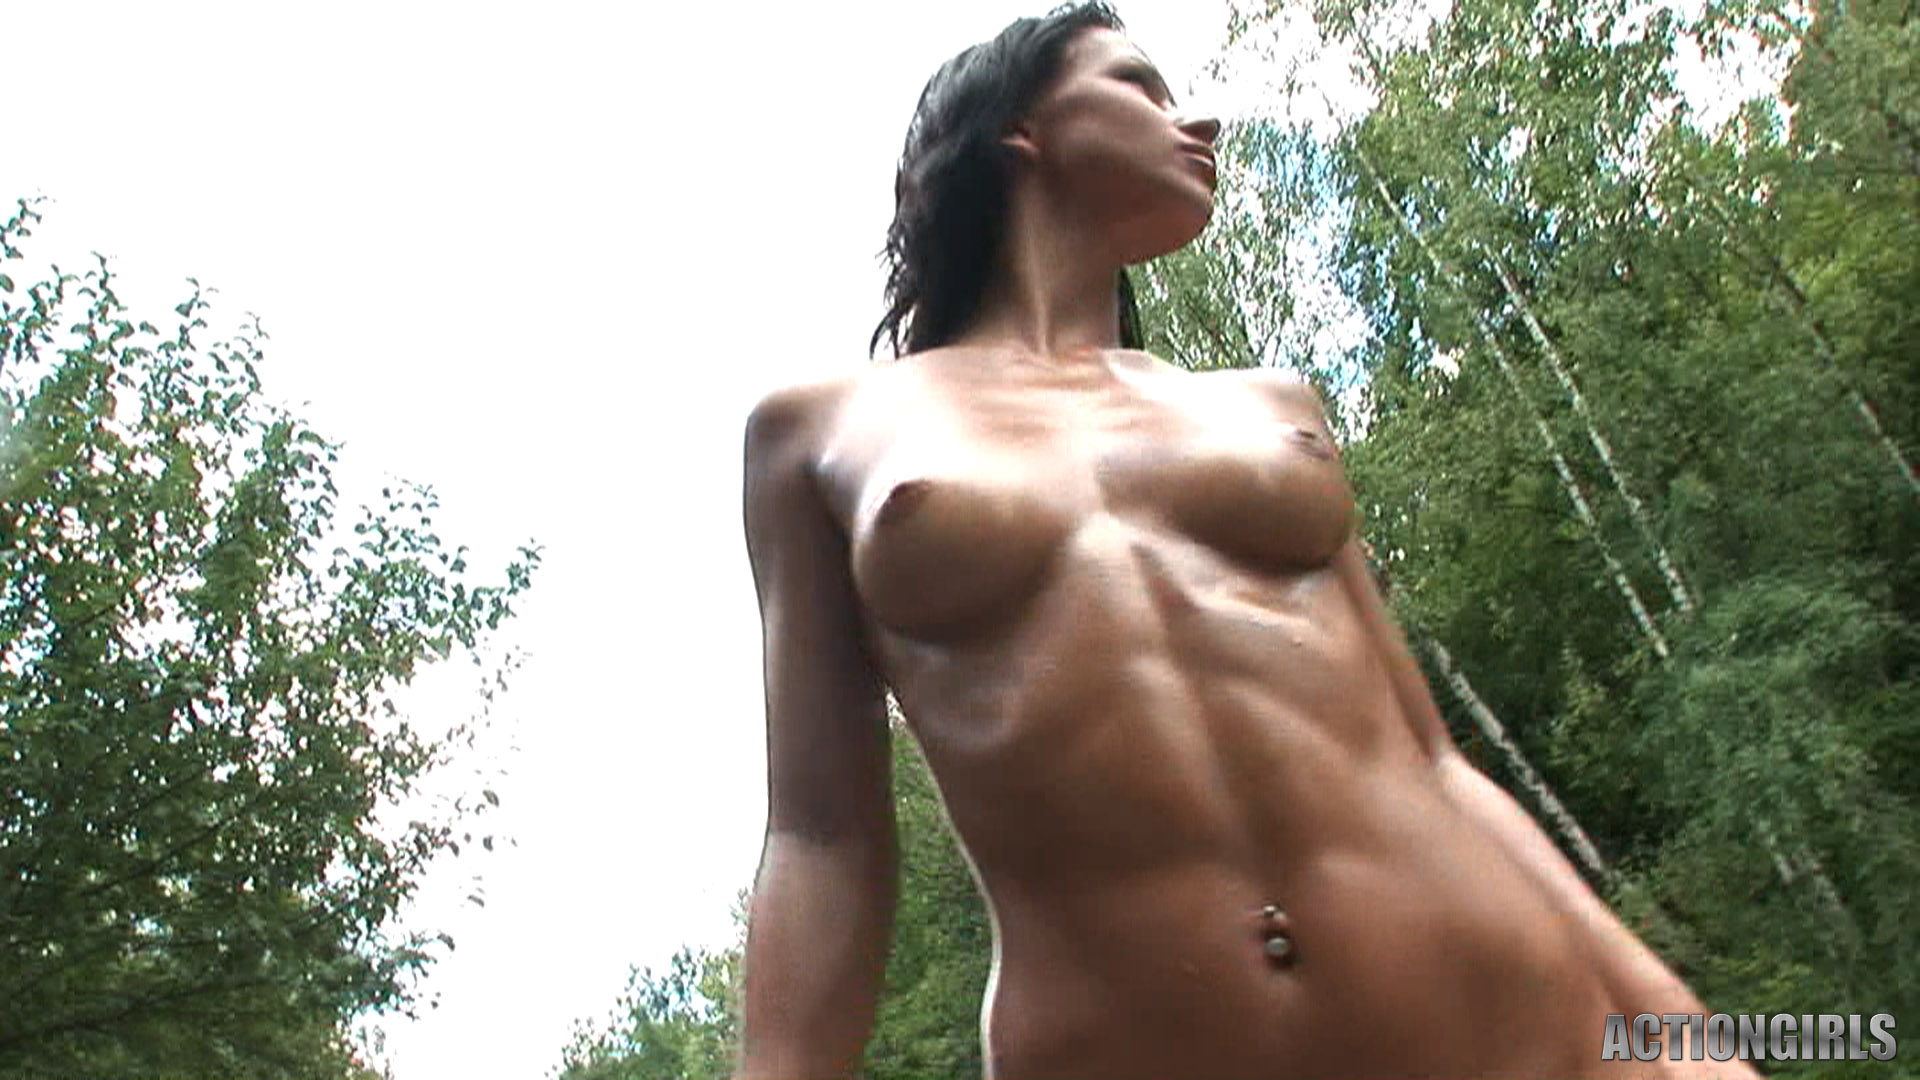 Happens. Thanks Susana spears nude boxing remarkable, this